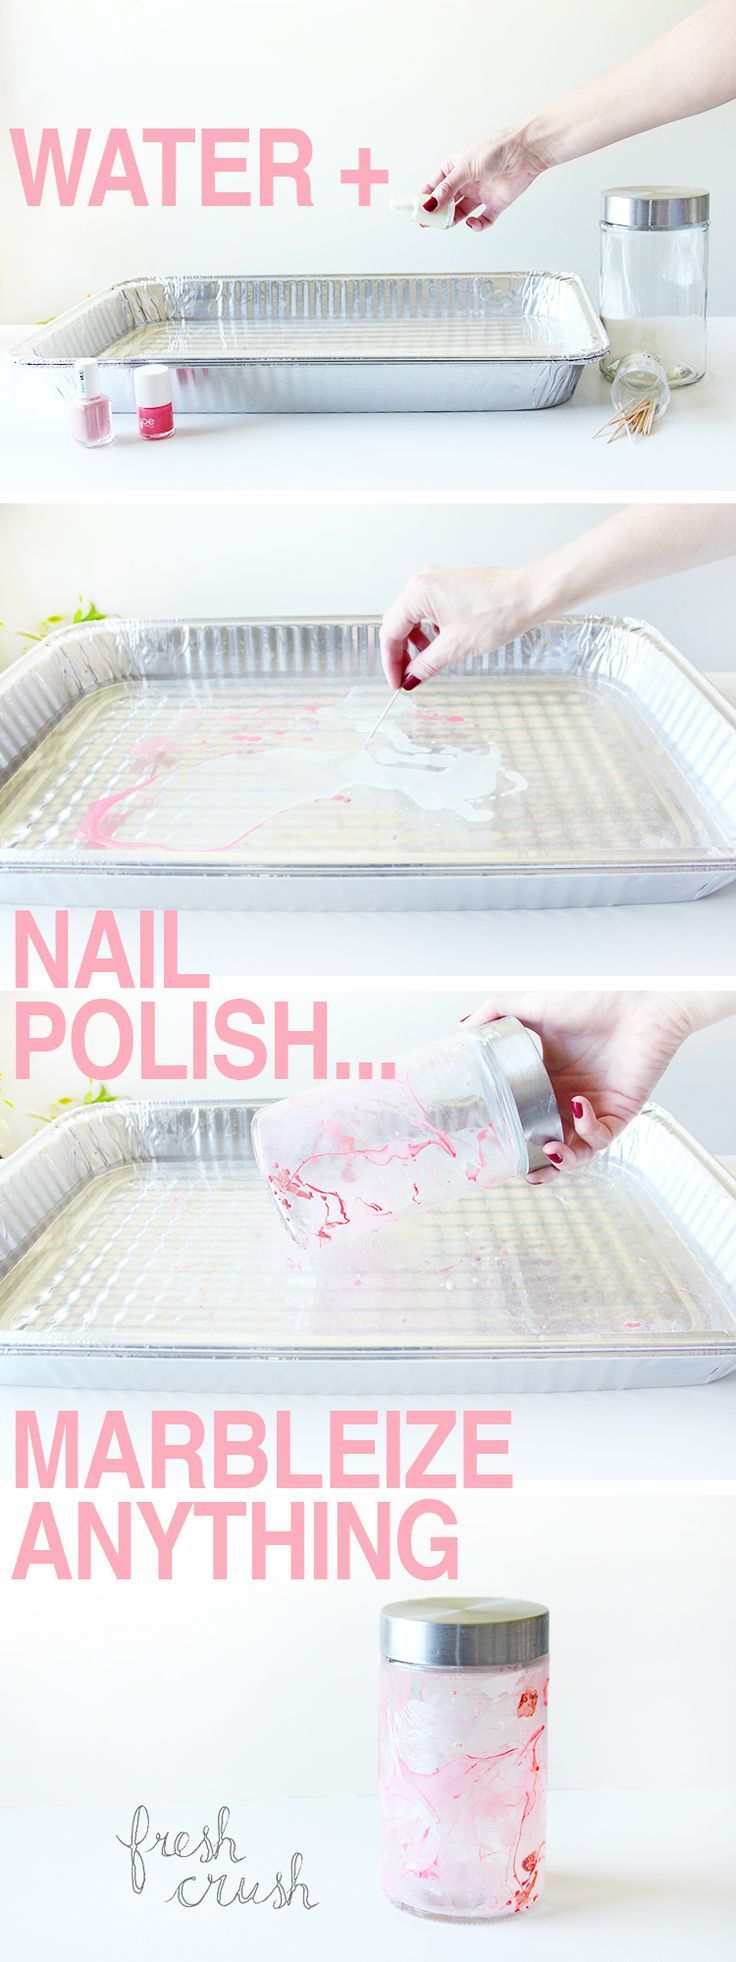 Put your old nail polishes to use with this FUN and EASY, faux marbling DIY technique! Cheap dollar store finds become high-style, chic, home decor in a few simple steps!